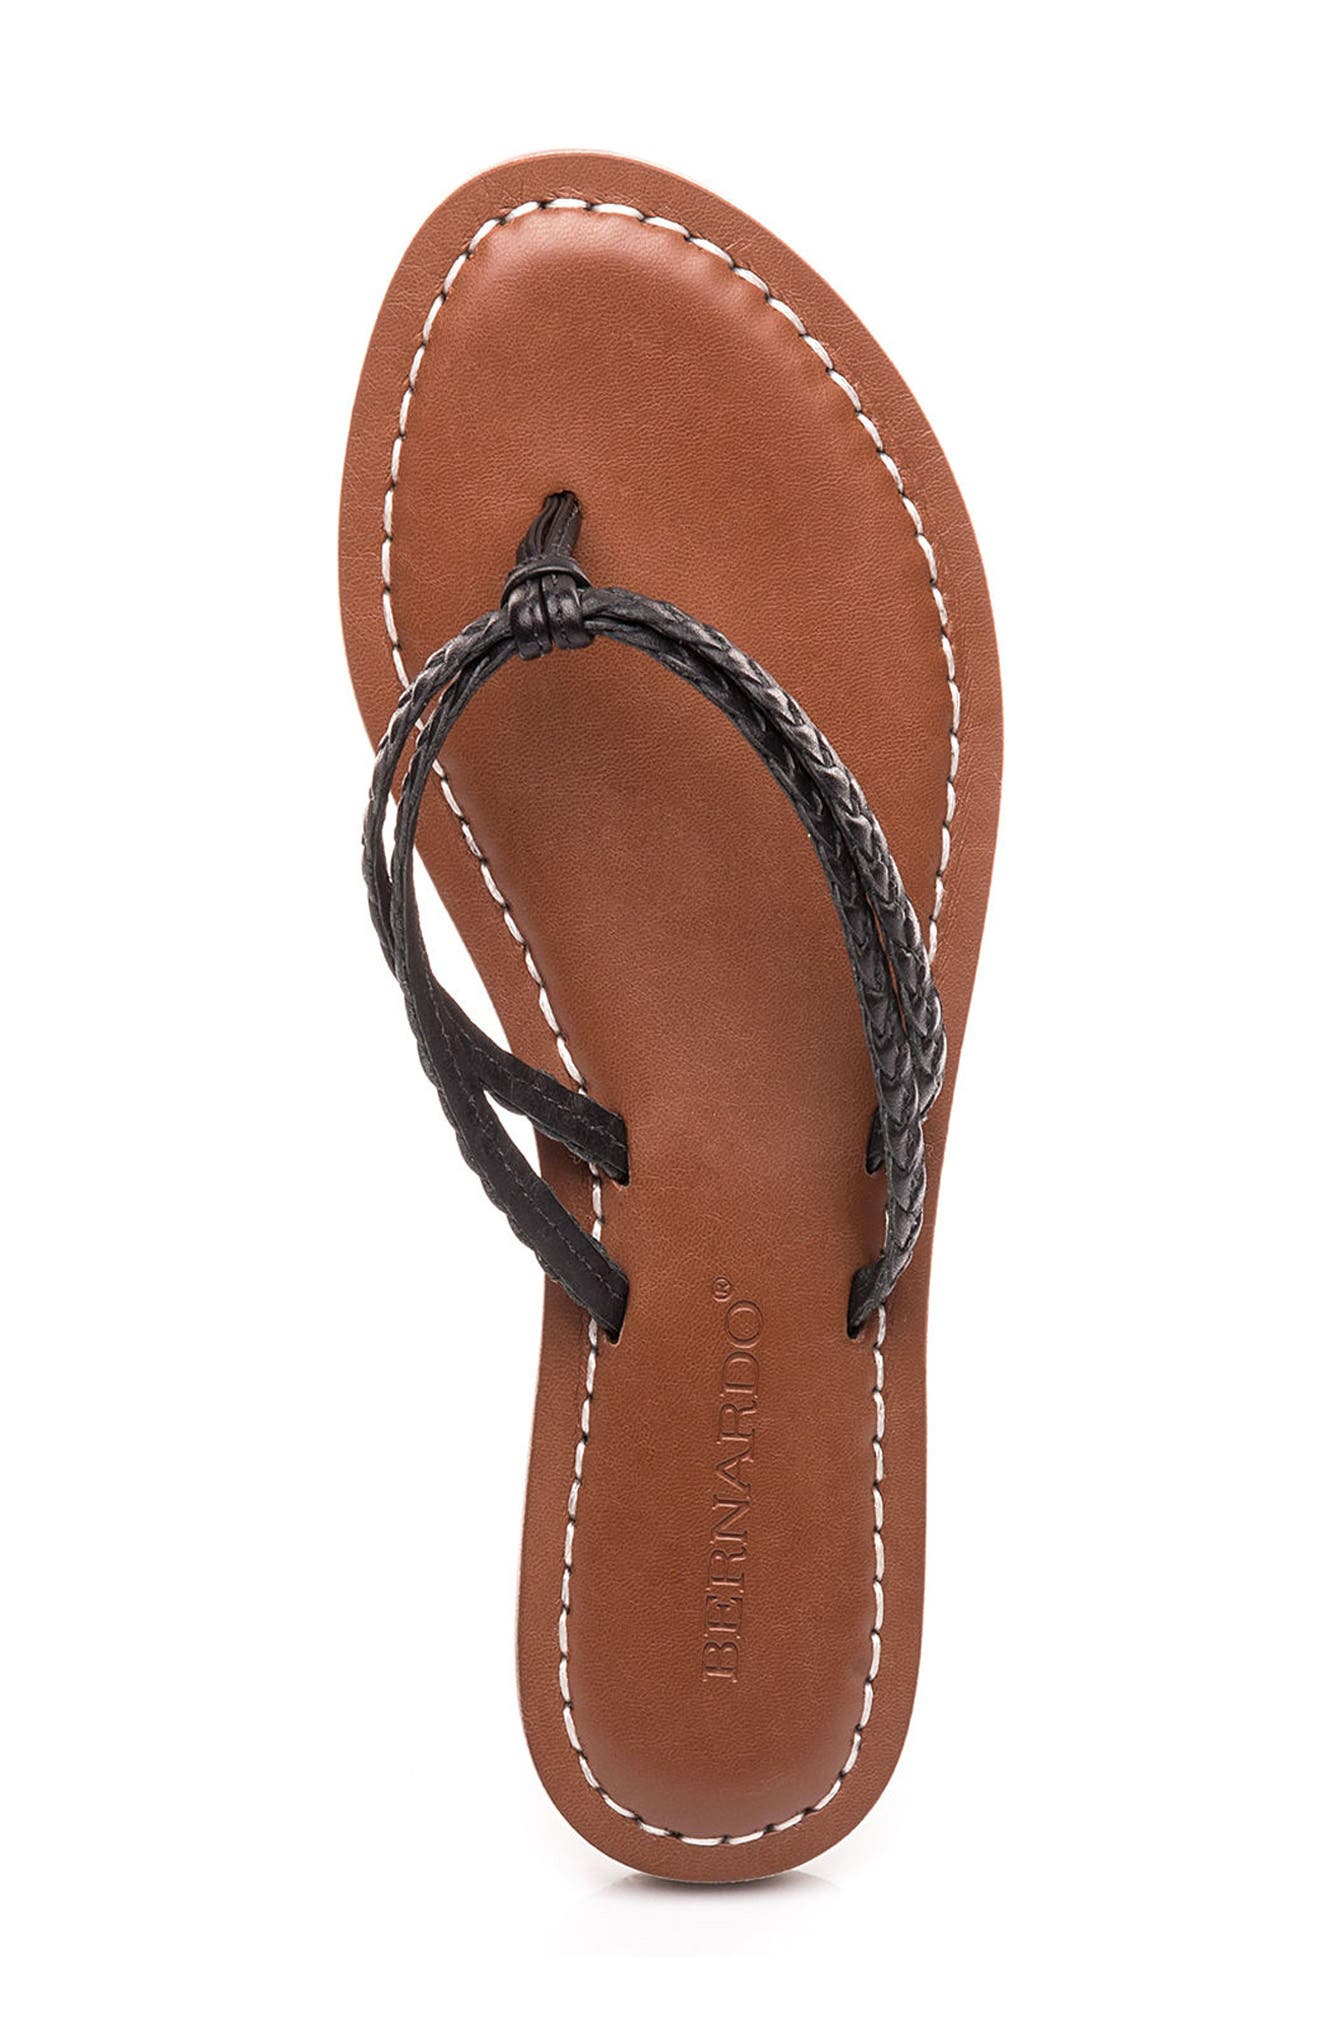 Bernardo Greta Braided Strap Sandal,                             Alternate thumbnail 29, color,